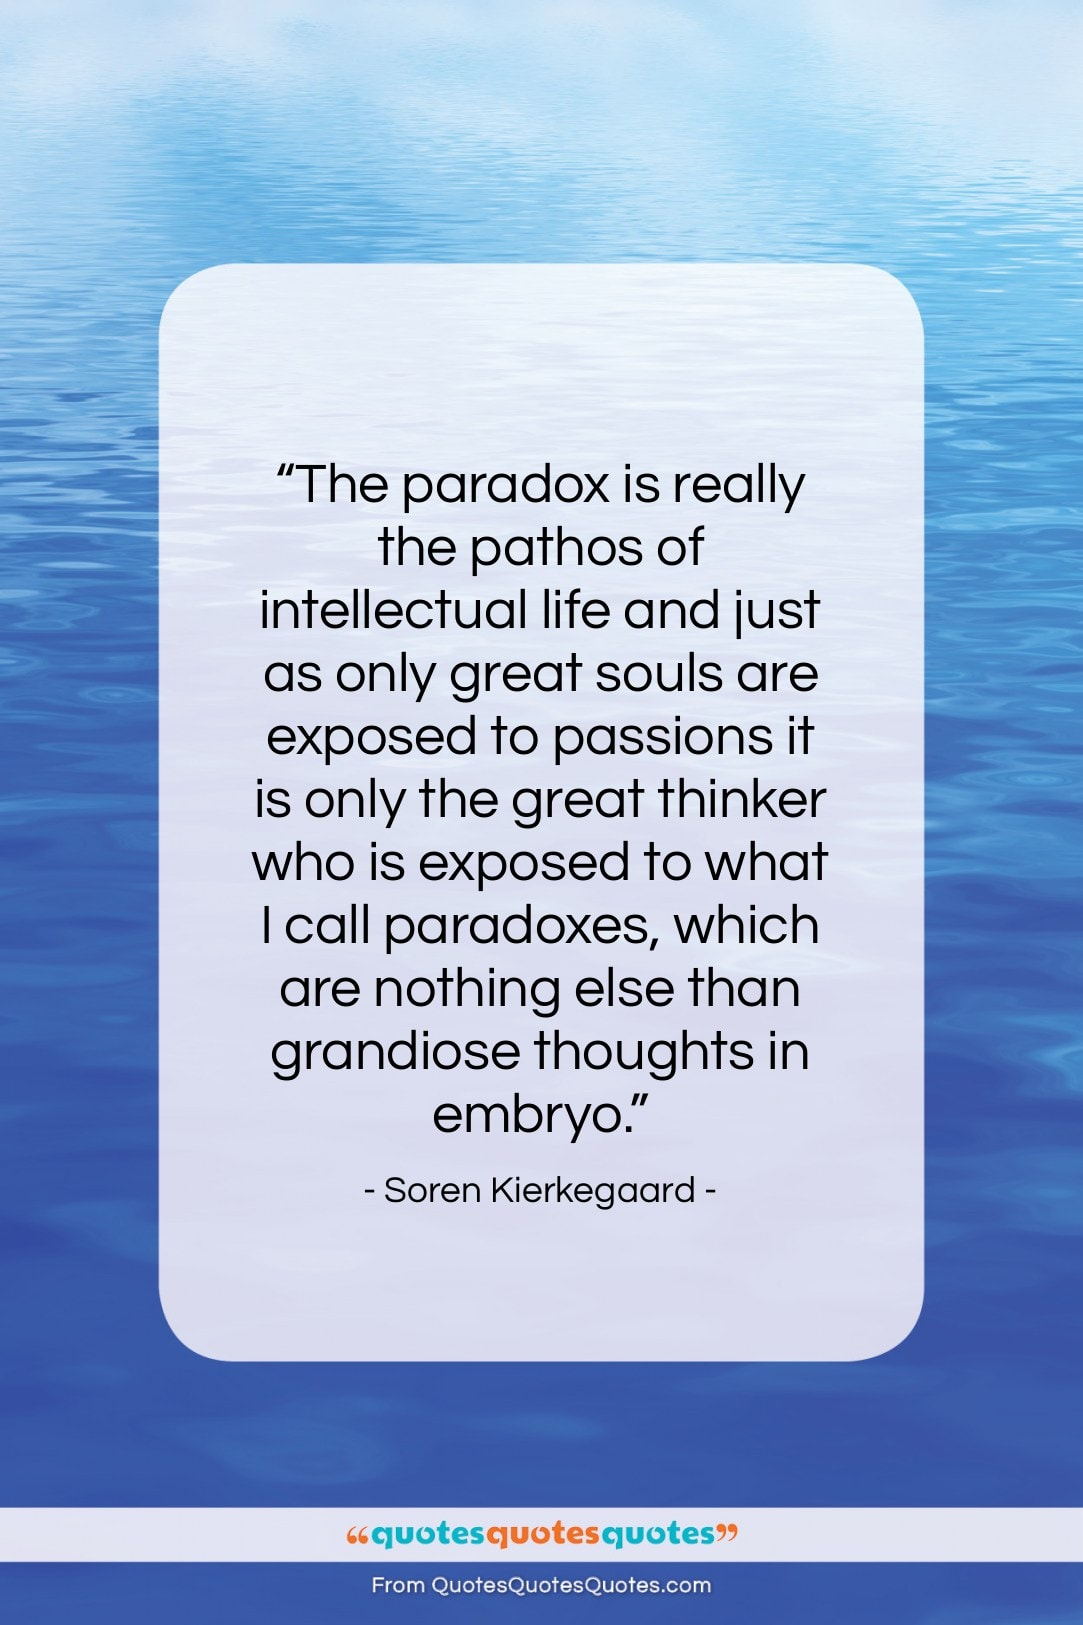 """Soren Kierkegaard quote: """"The paradox is really the pathos of…""""- at QuotesQuotesQuotes.com"""